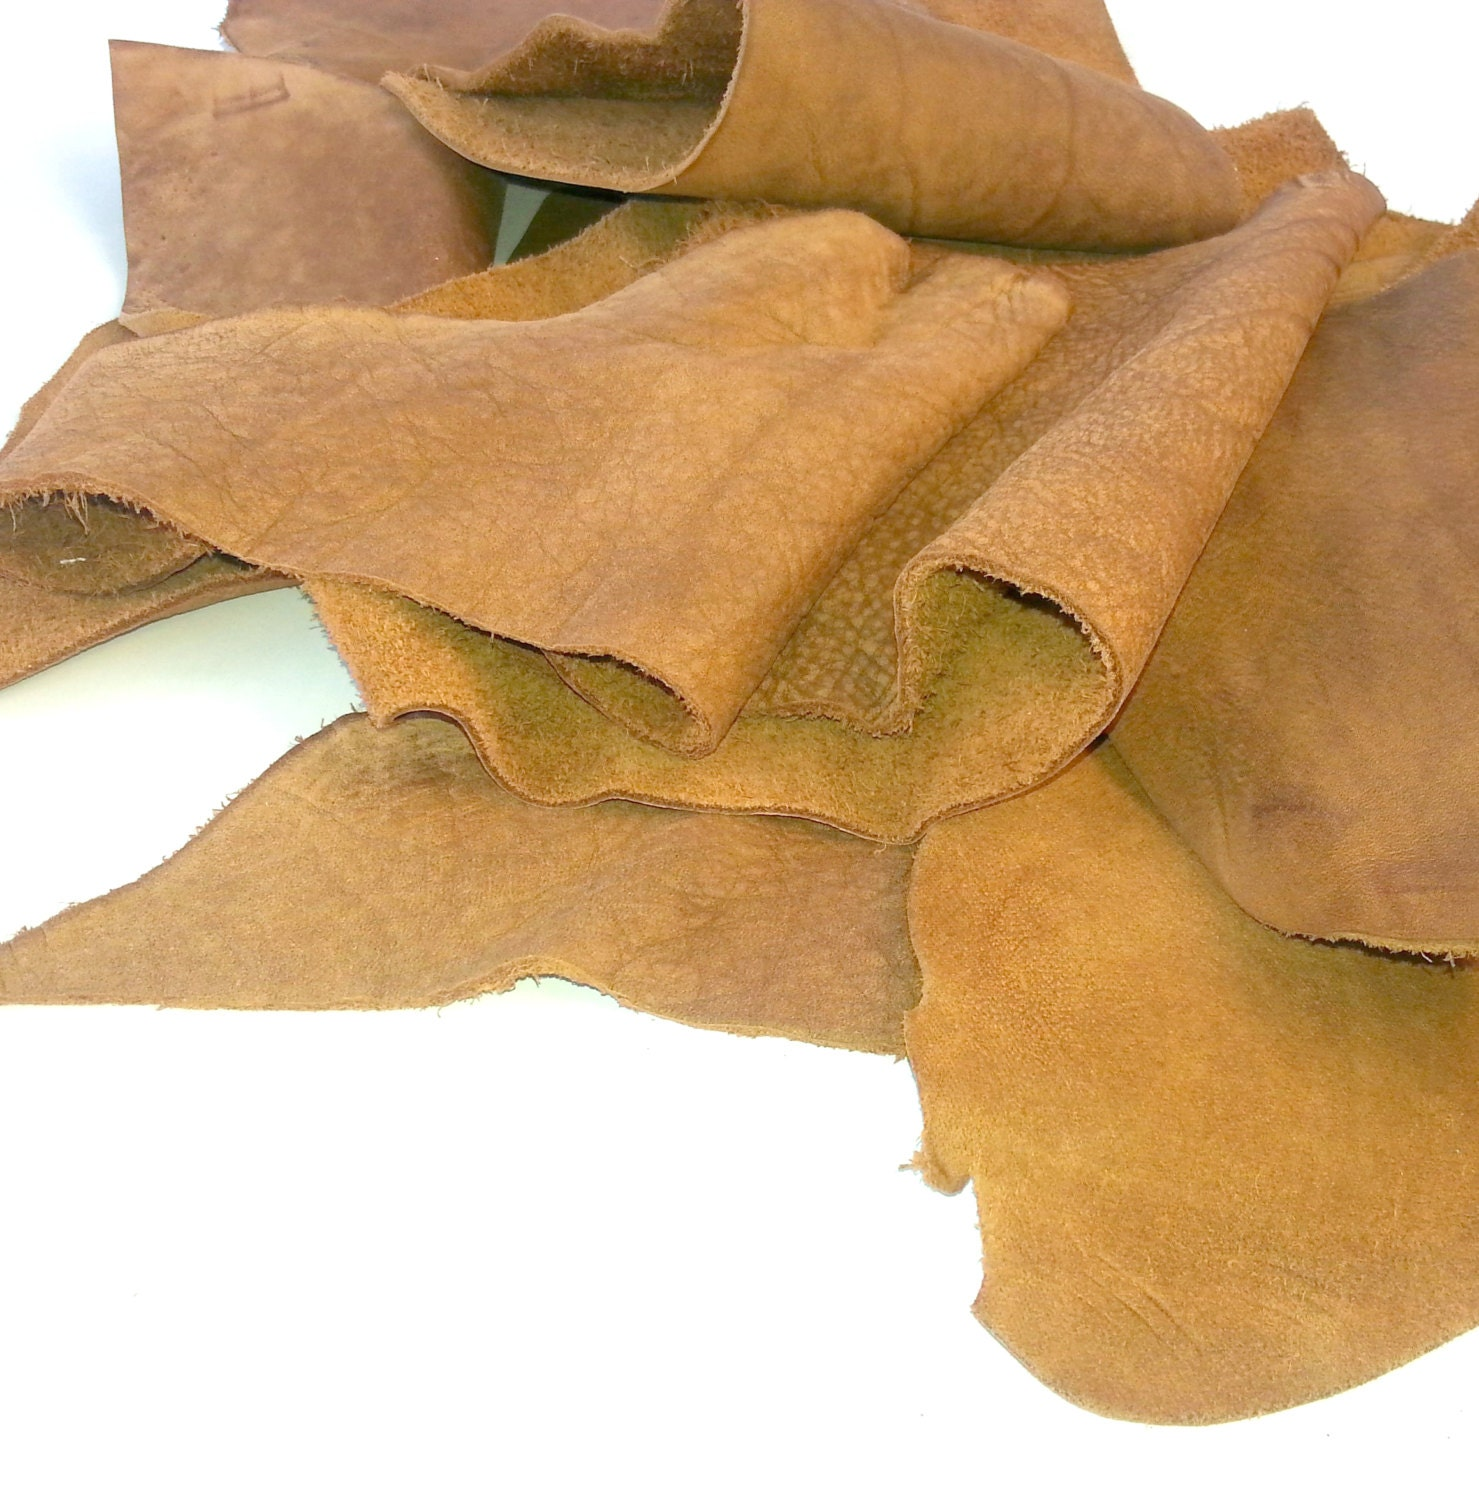 Leather scraps for crafts - Sold By Buyairsupply